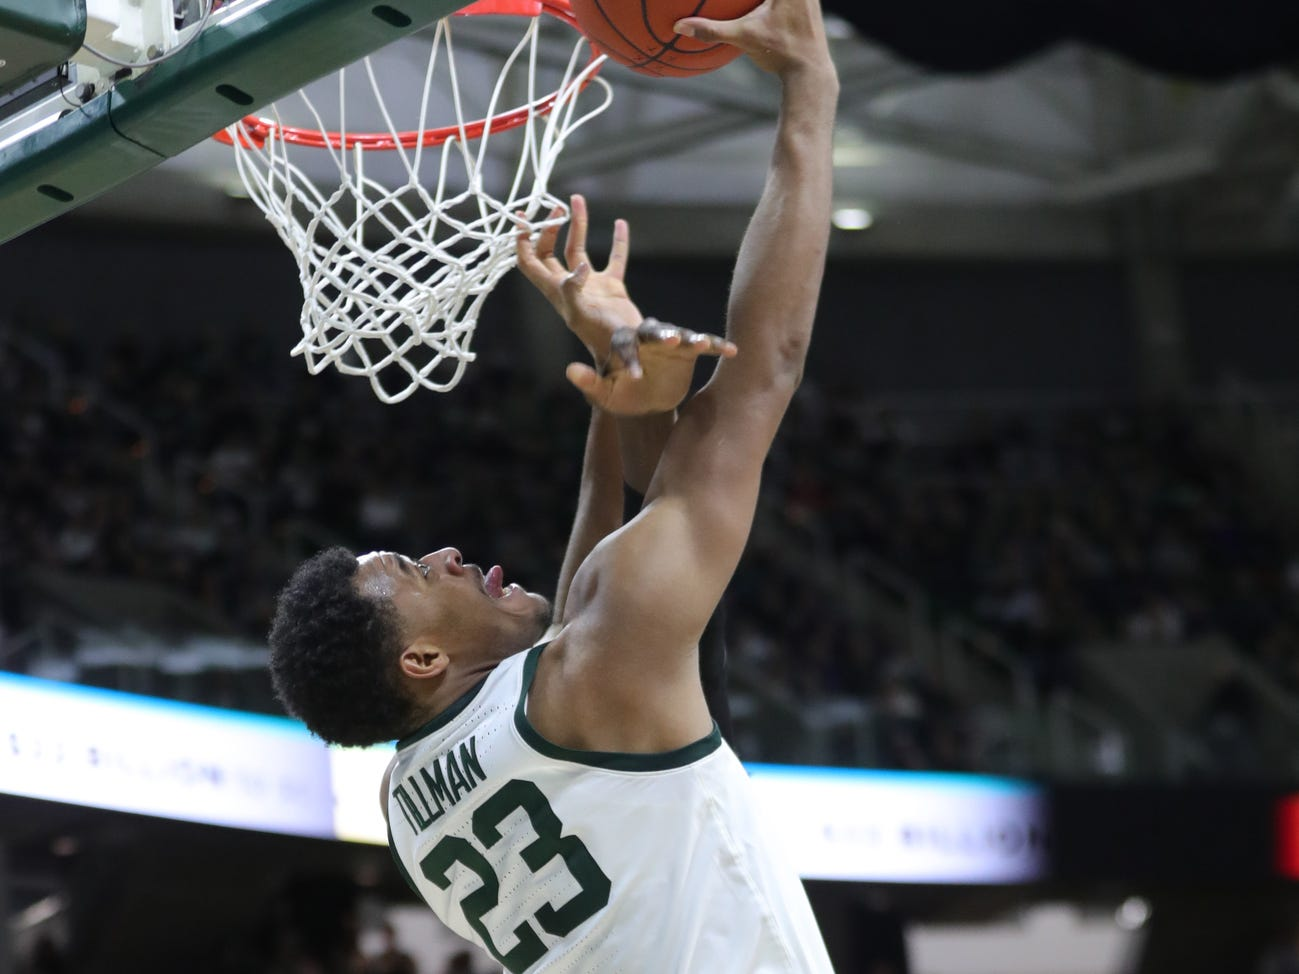 Michigan State forward Xavier Tillman scores against Purdue forward Trevion Williams during second half action Tuesday, Jan. 8, 2019 at the Breslin Center in East Lansing, Mich.